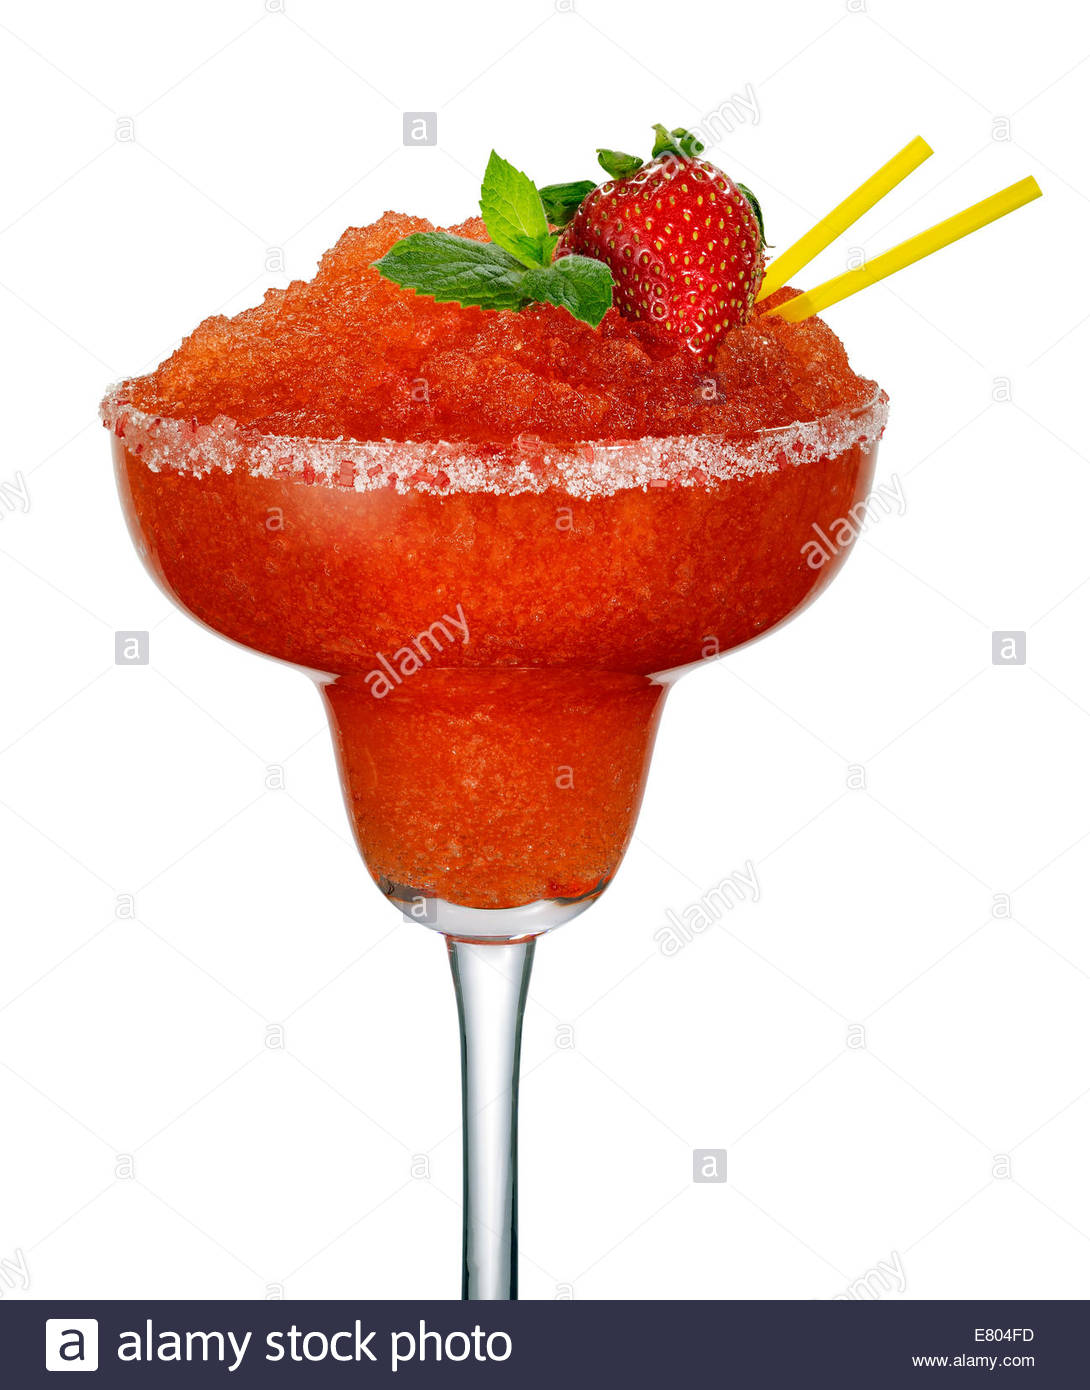 strawberry daiquiri or cocktail on white background - Stock Image